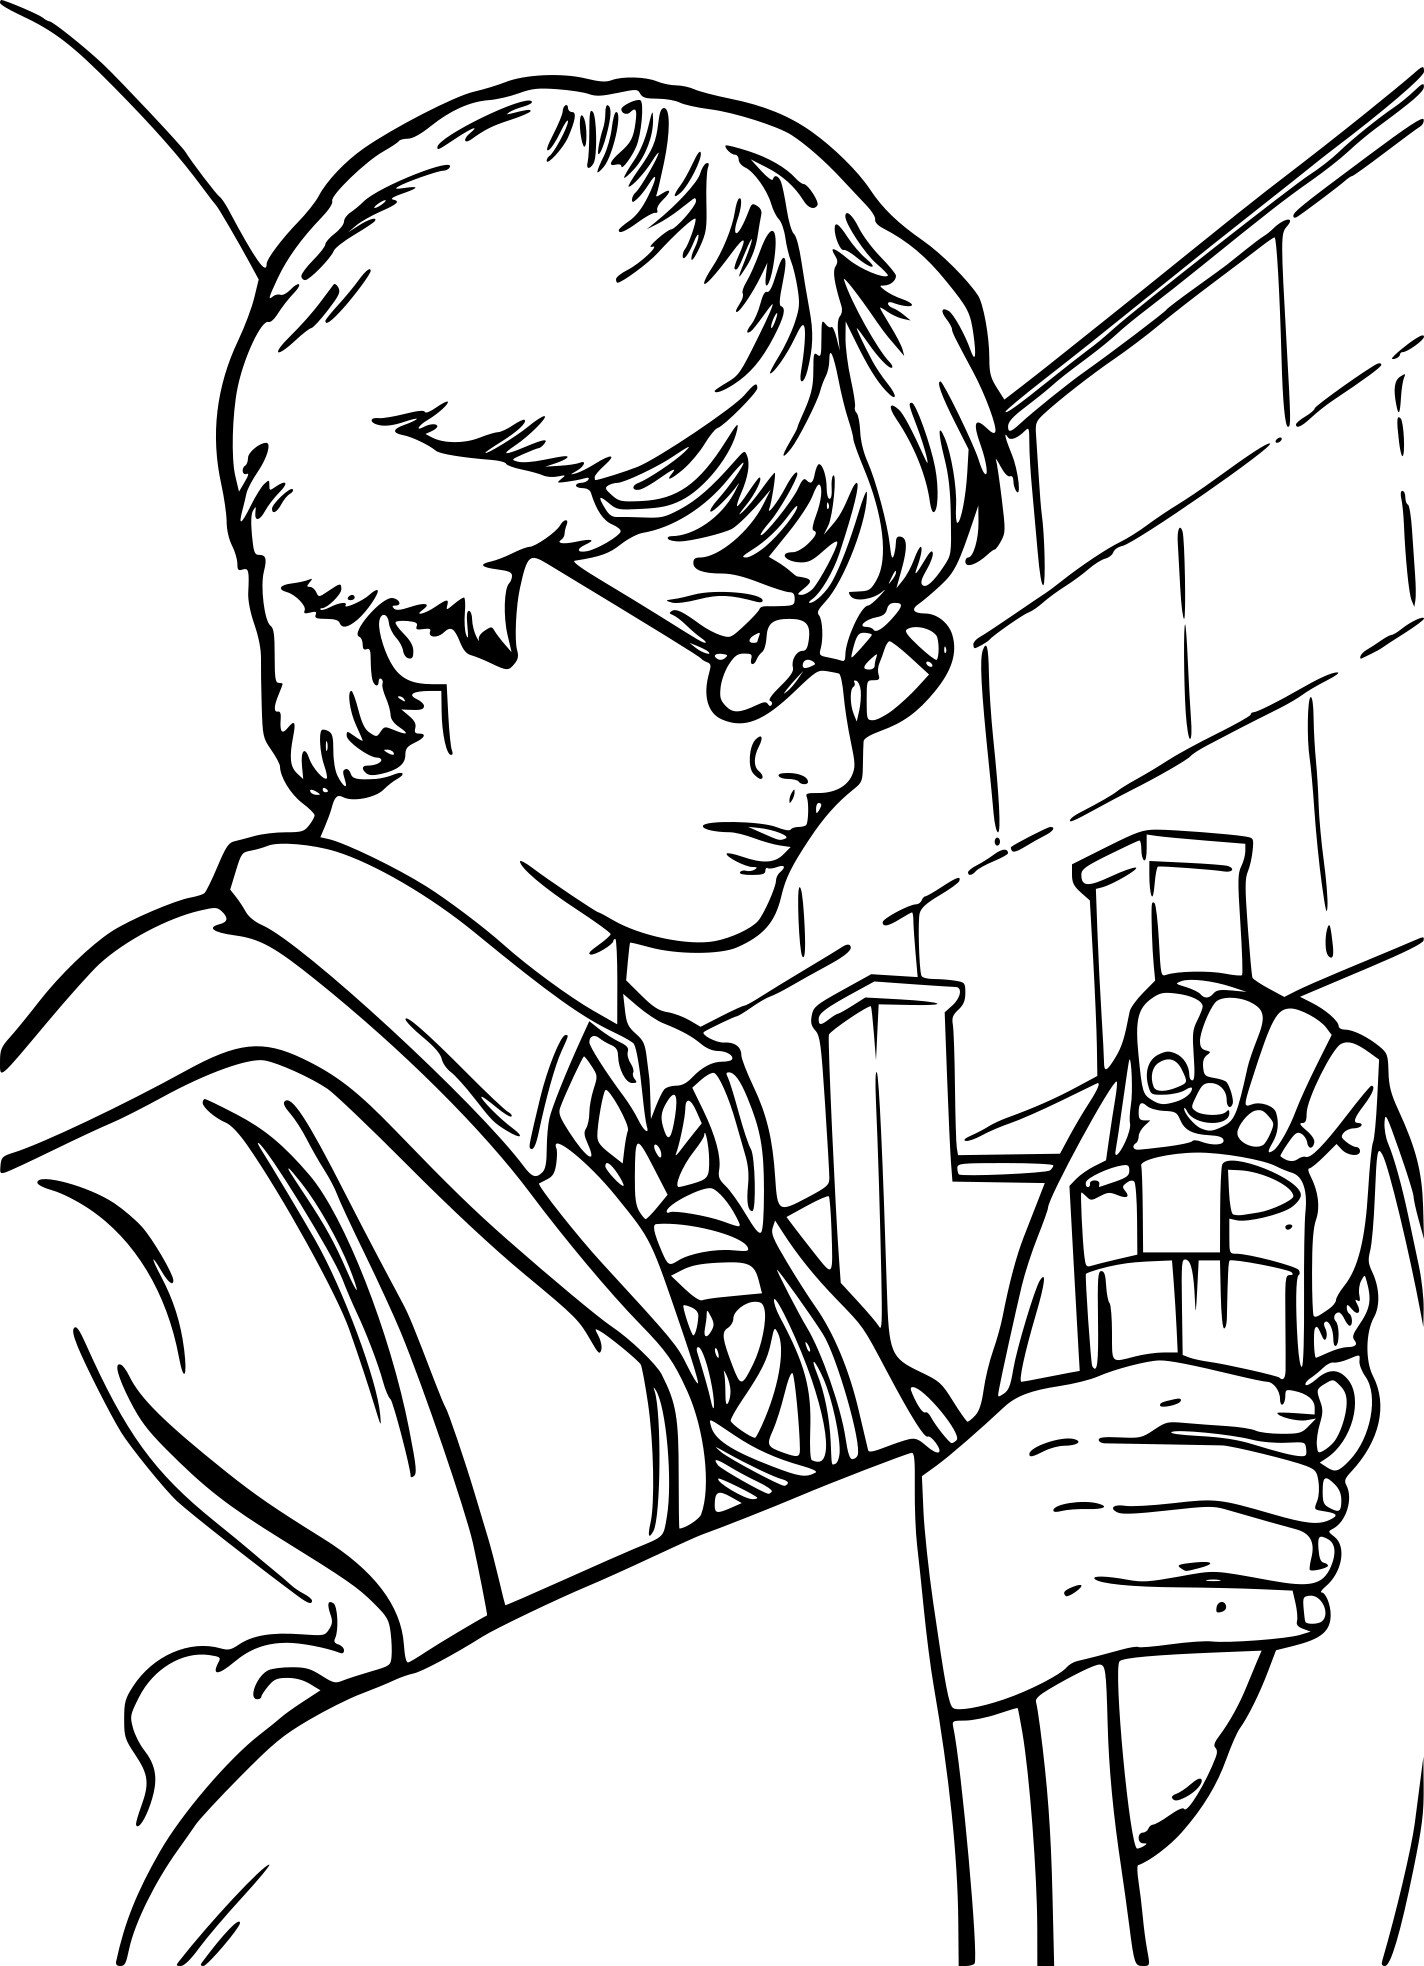 Coloriage Harry Potter Dessin A Imprimer Sur Coloriages Info